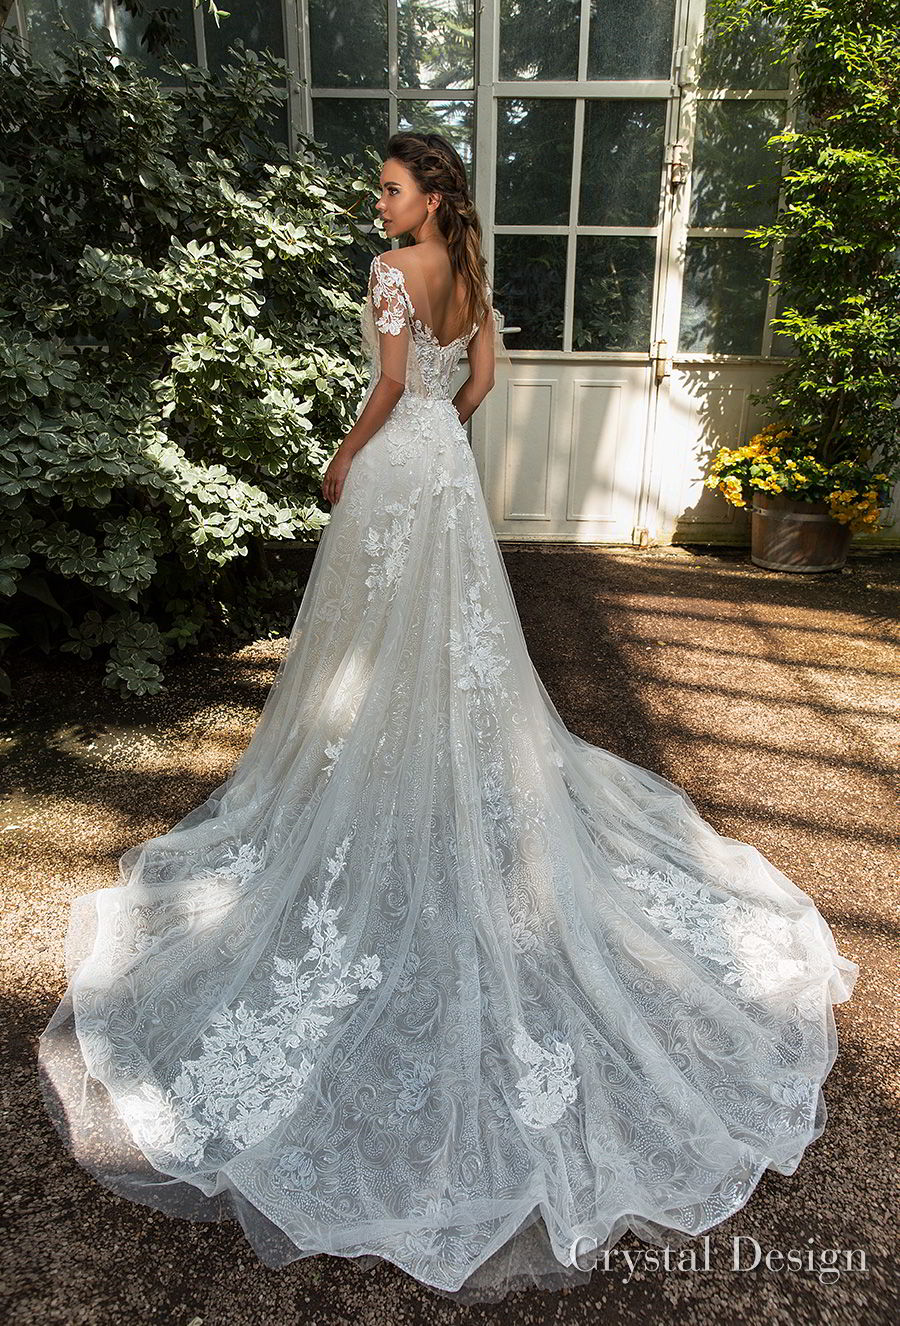 Crystal Design 2018 Wedding Dresses Royal Garden